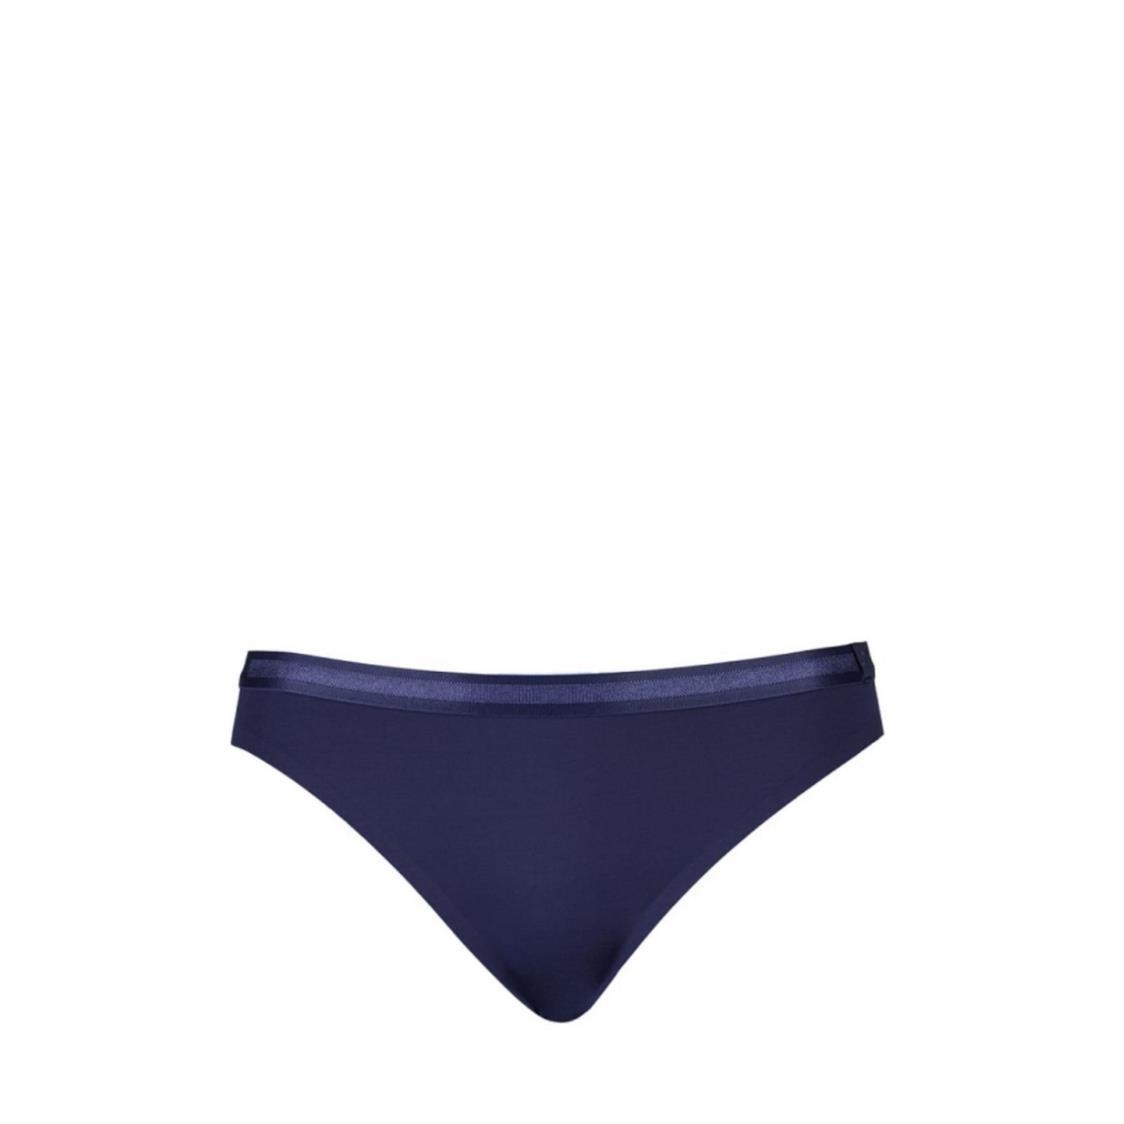 S by sloggi Serenity Mini Indigo Blue